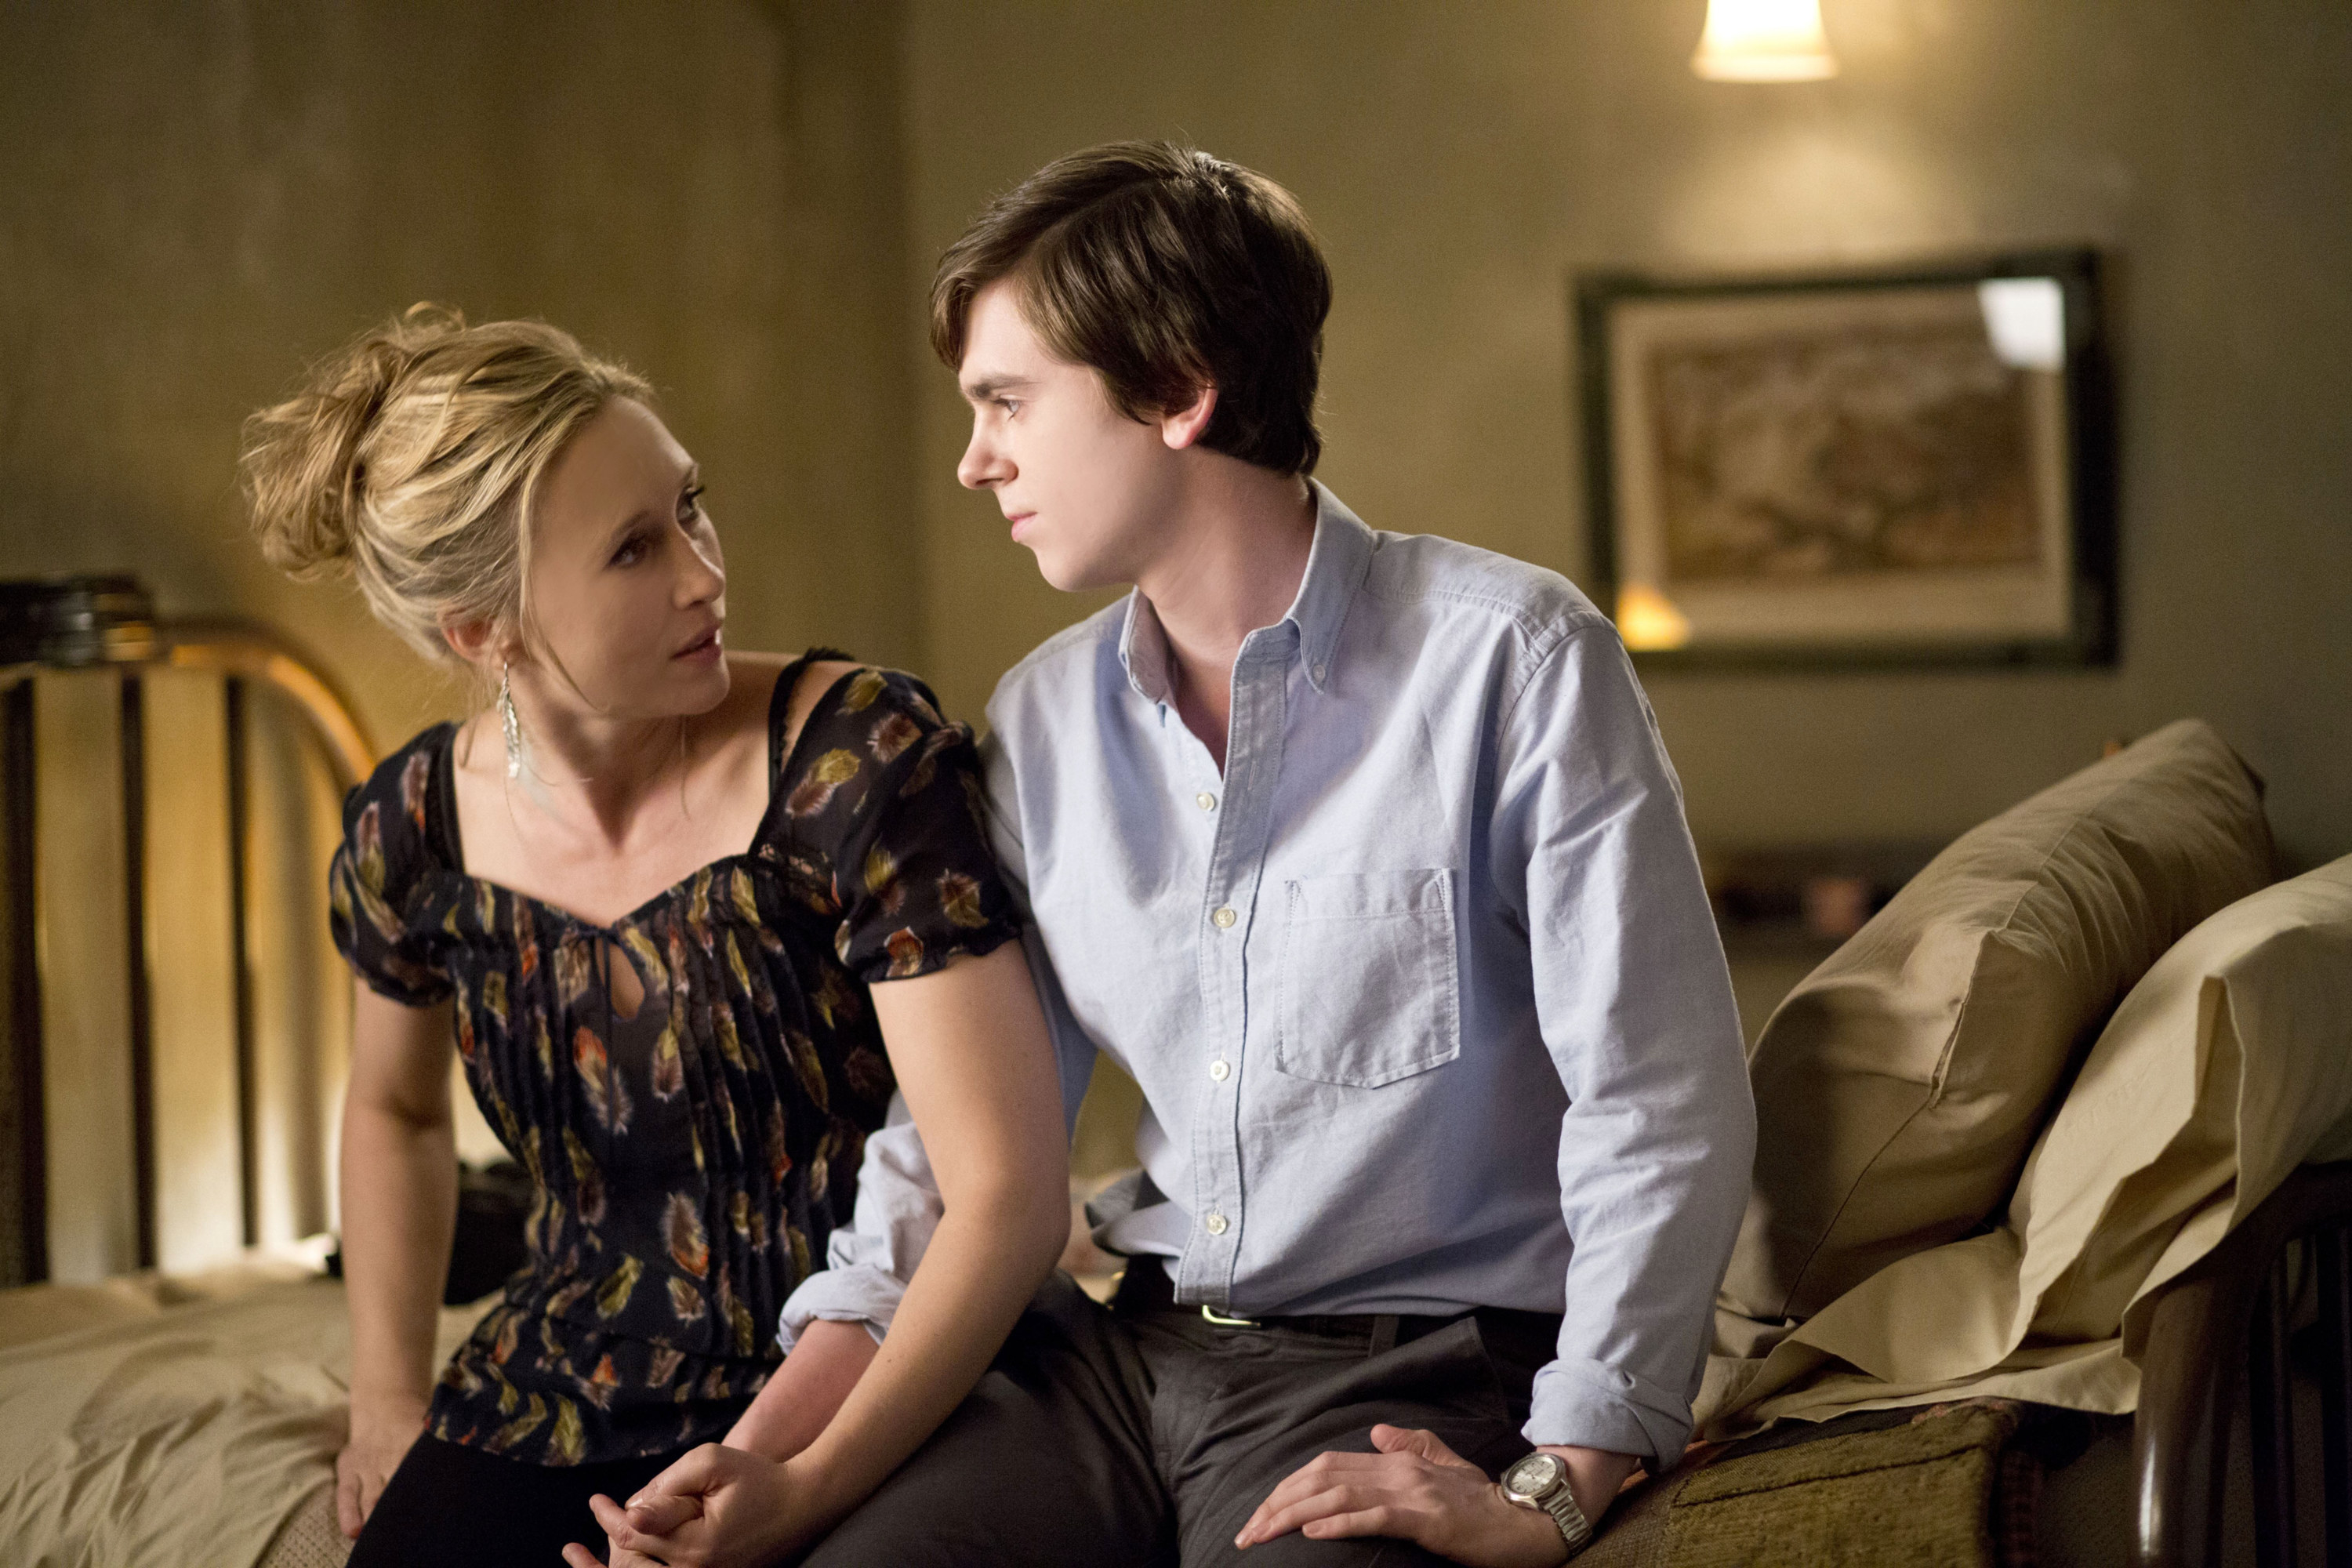 Vera Farmiga and Freddie Highmore hold hands on a bed